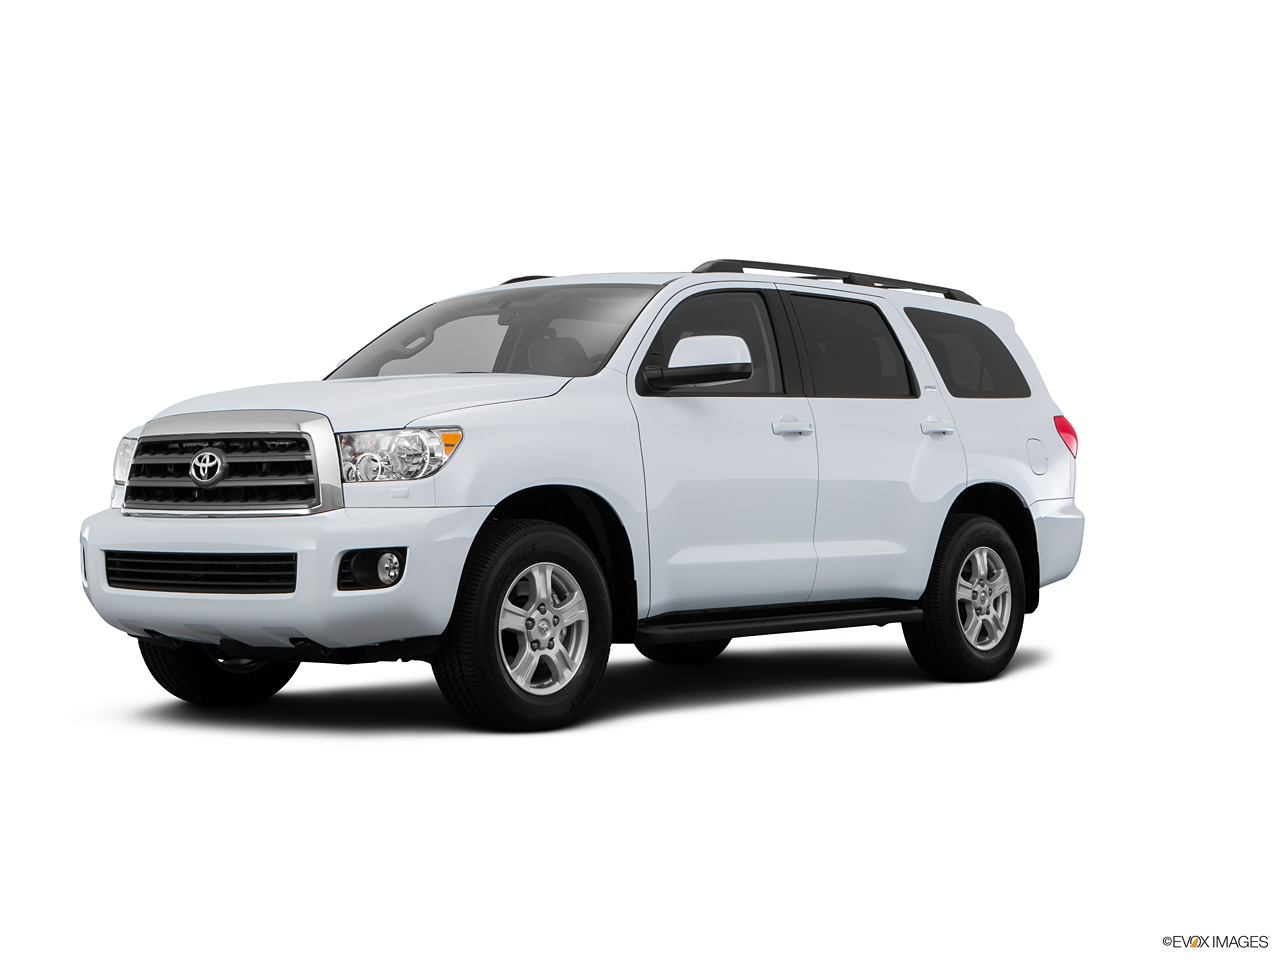 toyota sequoia 2016 5 7l vxr in uae new car prices specs. Black Bedroom Furniture Sets. Home Design Ideas